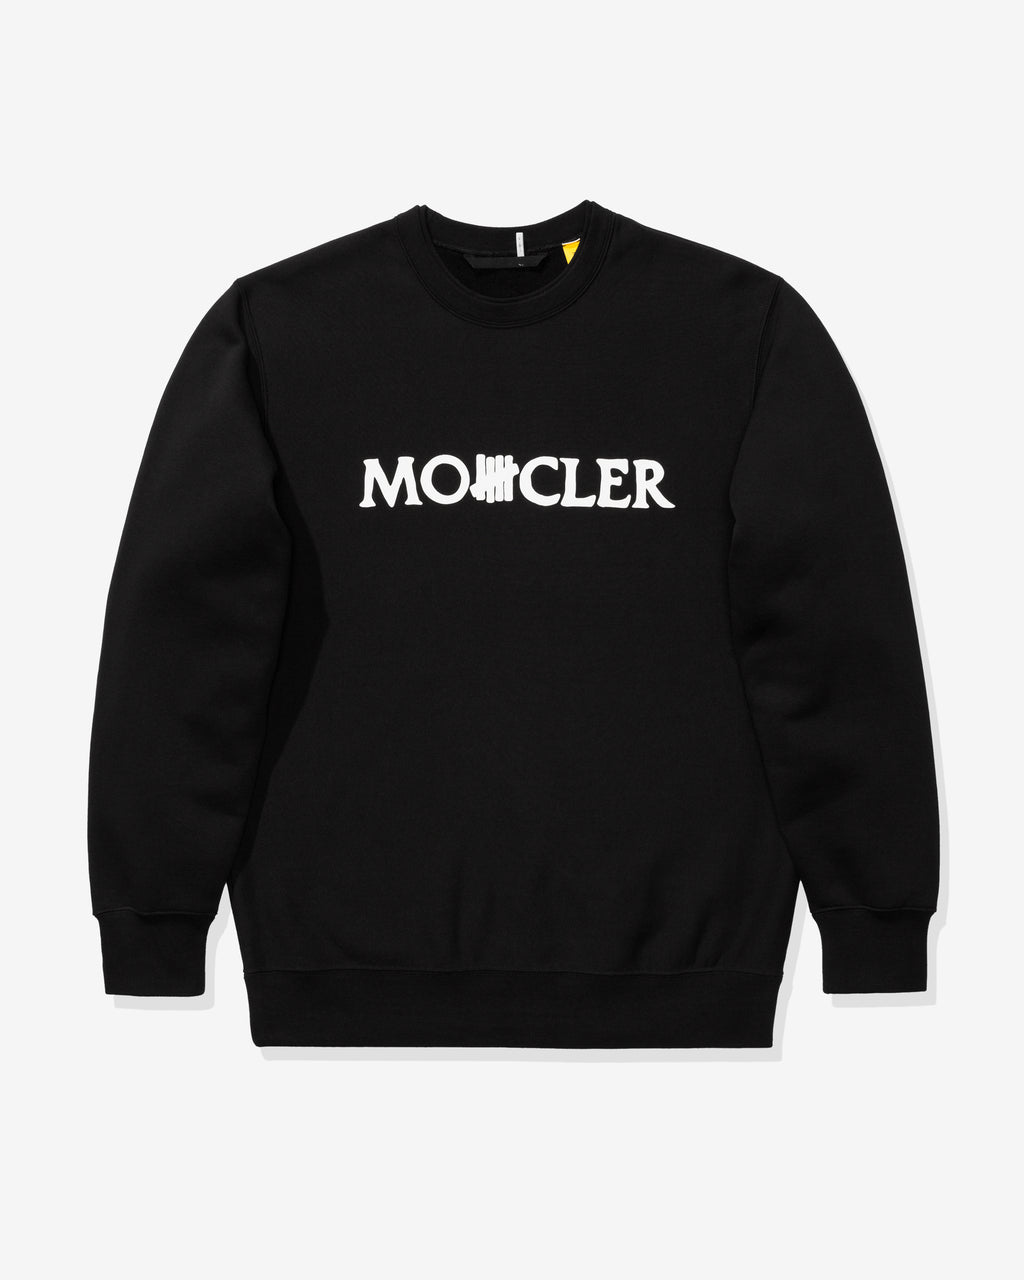 UNDEFEATED X MONCLER SWEATSHIRT - BLACK